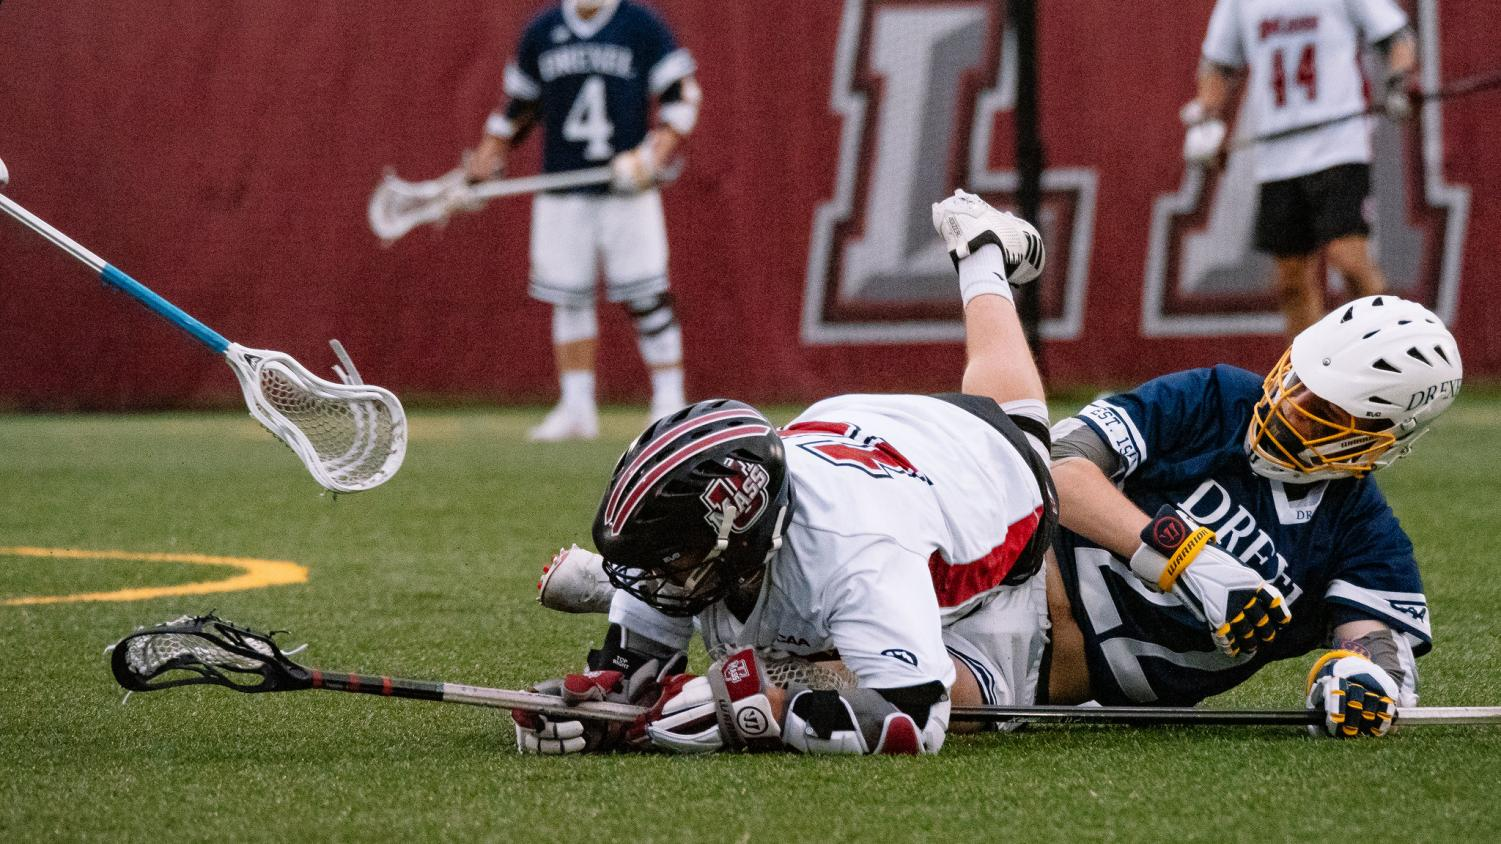 UMass suffers devastating 15-12 upset in the semifinal round